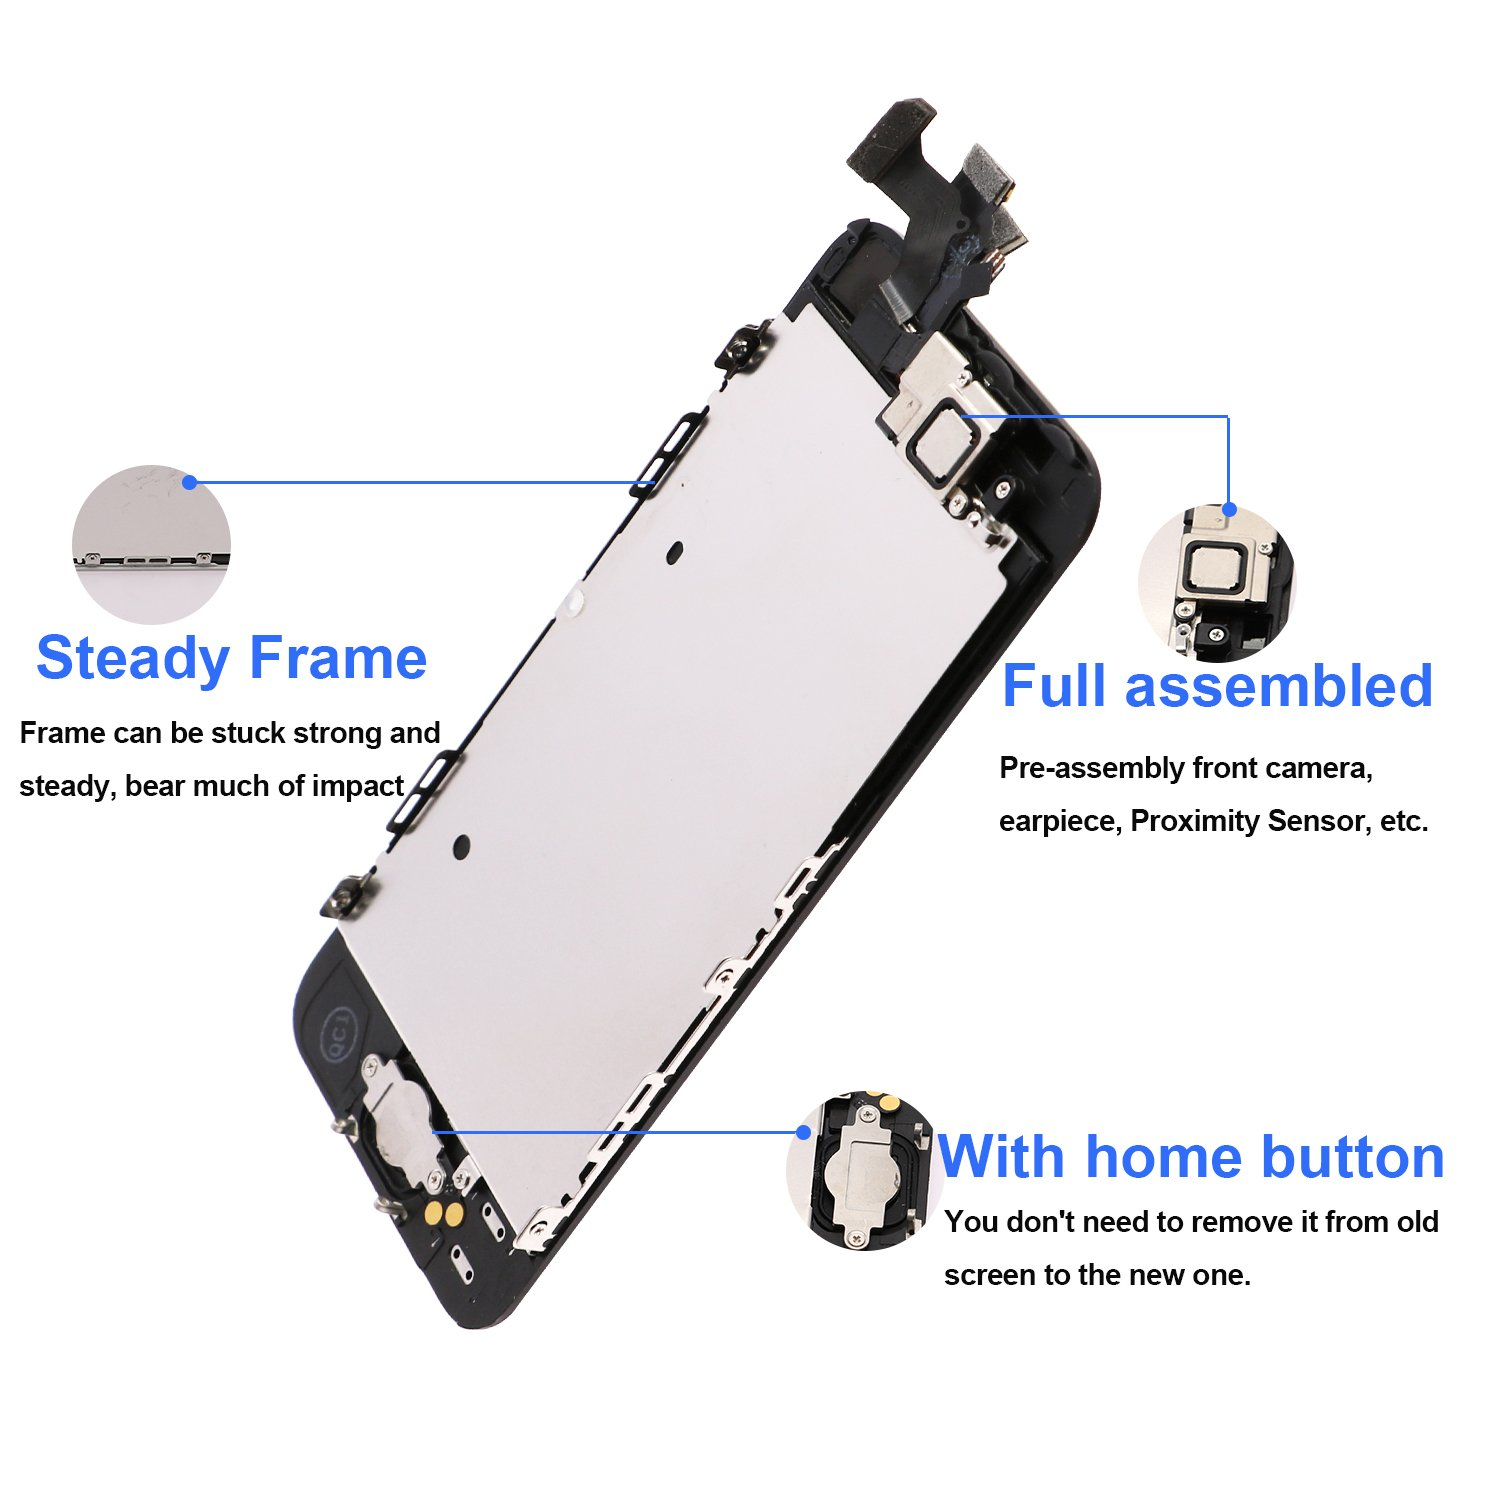 For iPhone 5 Screen Replacement With Home Button, Black- MAFIX Full Pre-assembly LCD Display Digitizer Touch Screen Kit Include Repair Tools & Screen Protector by MAFIX (Image #3)